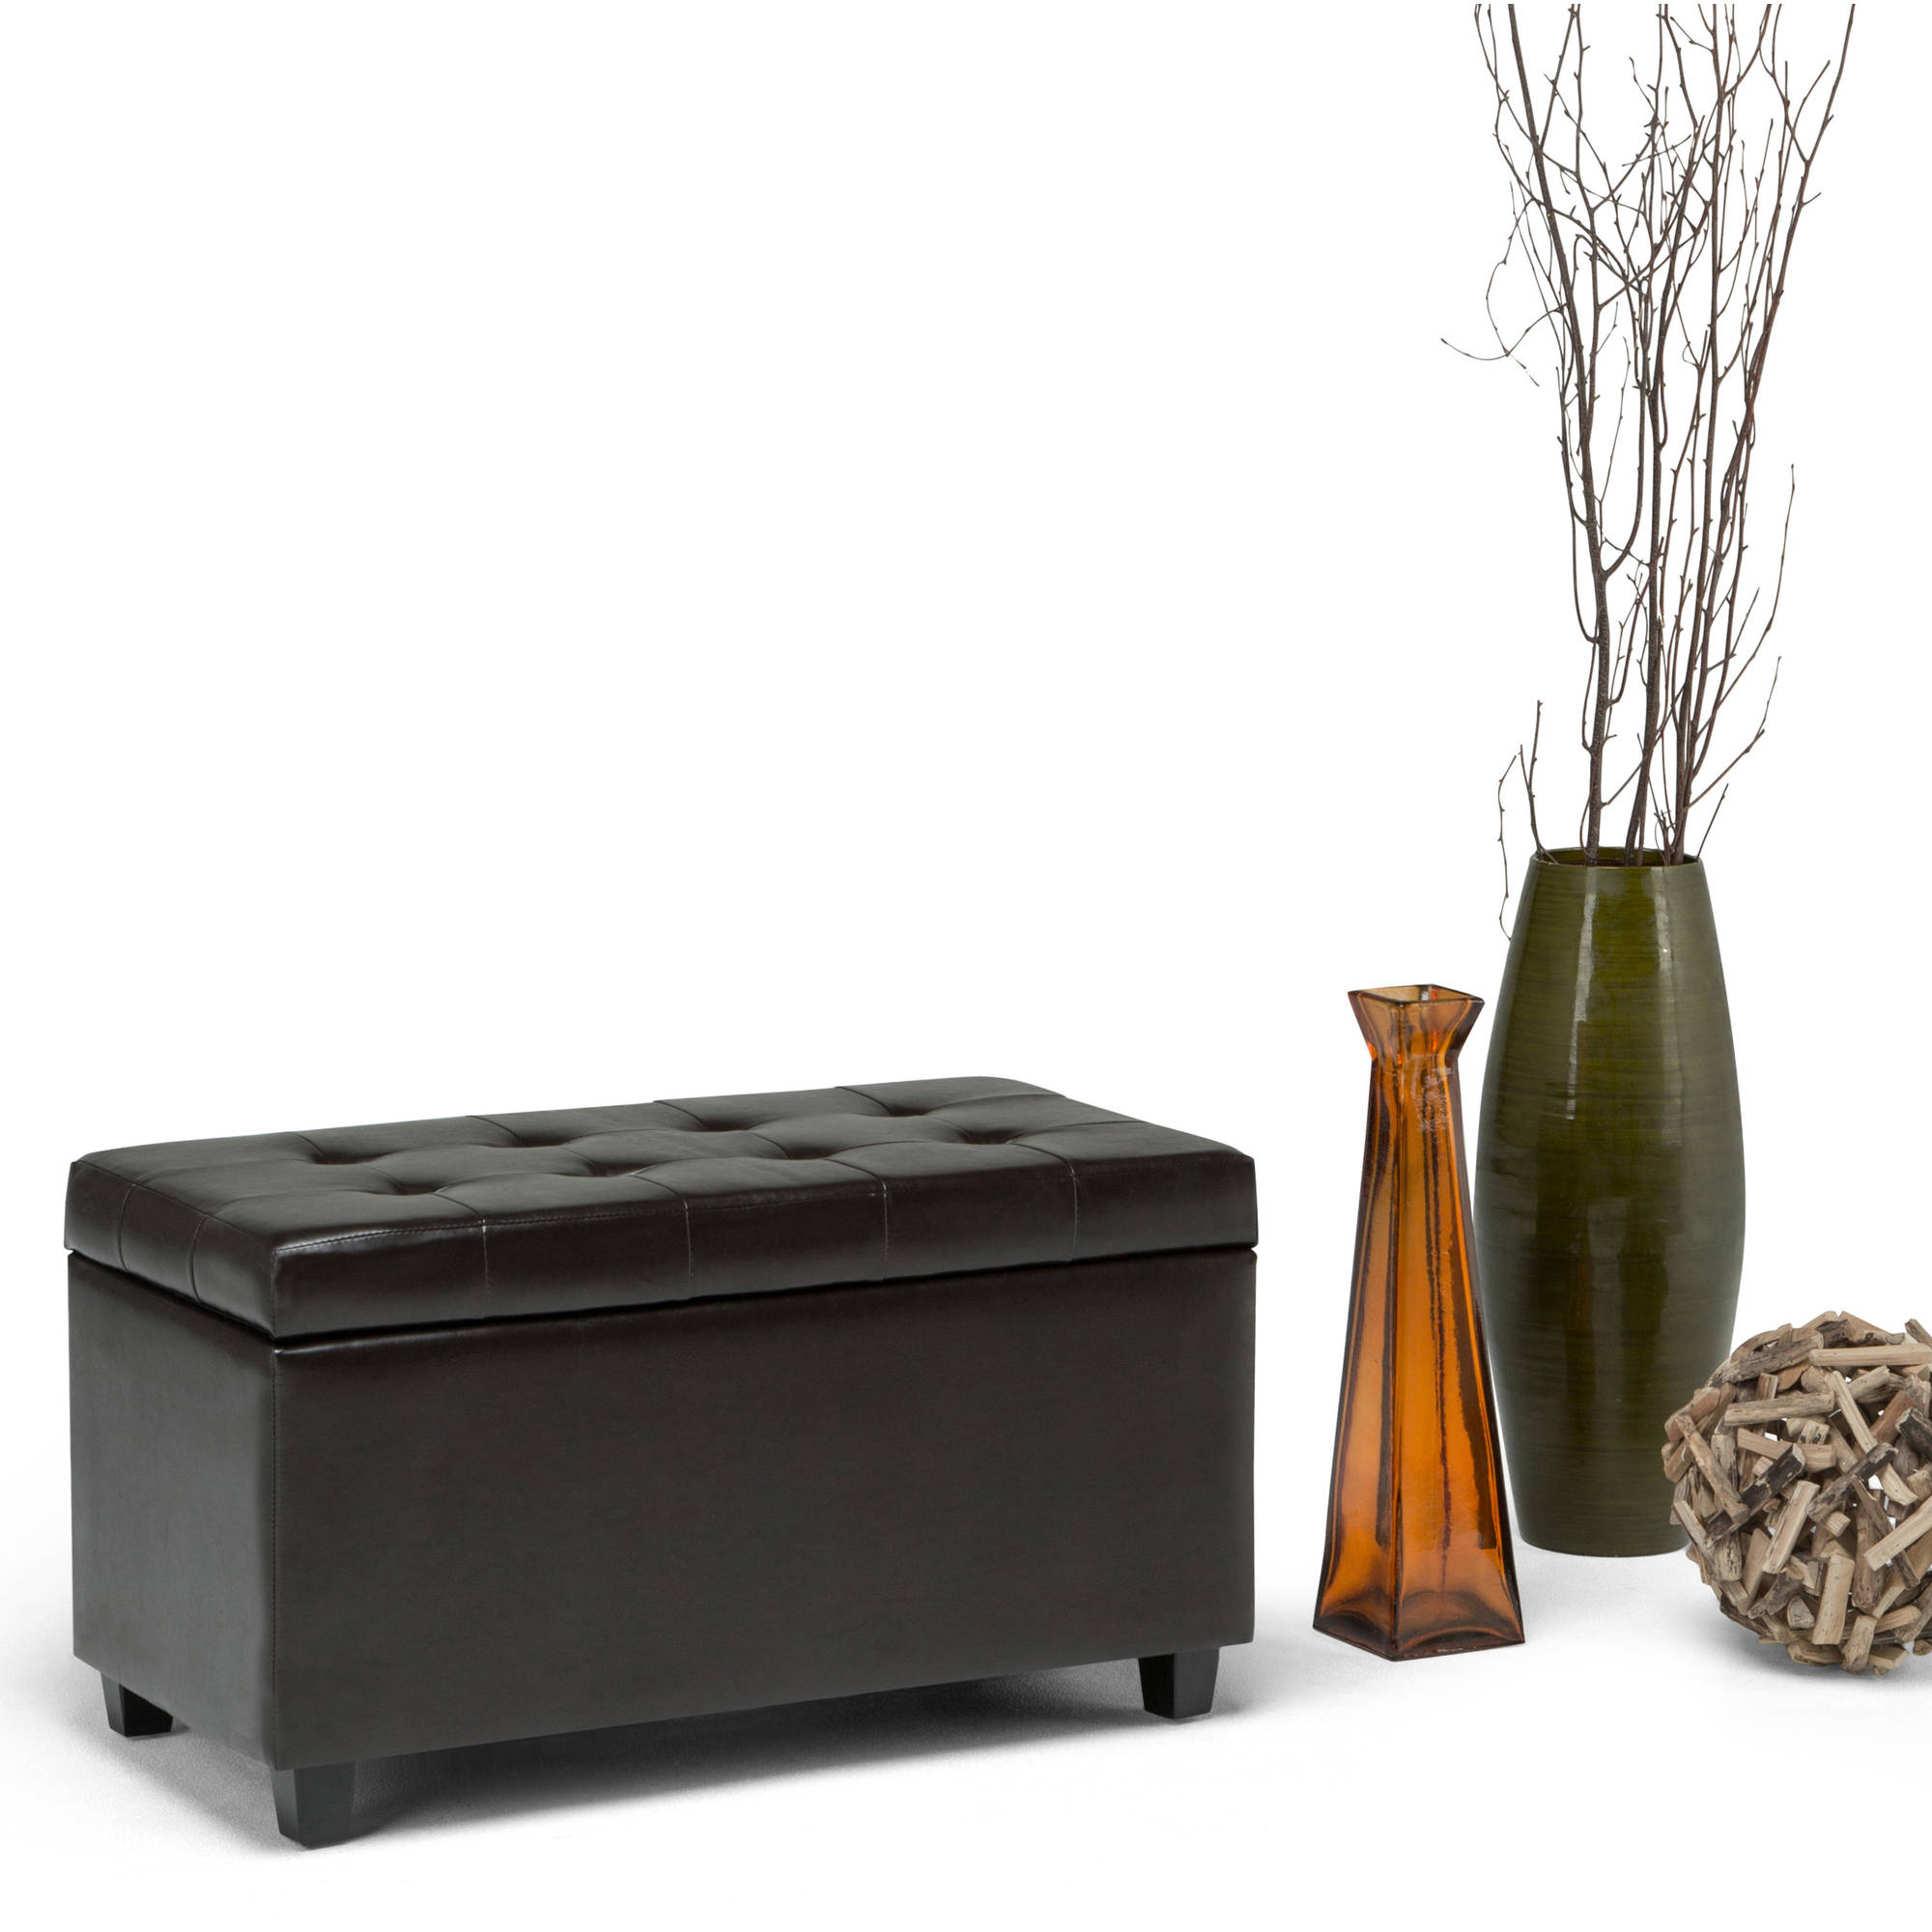 Brooklyn + Max City Medium Rectangular Brown Faux Leather Storage Ottoman Bench